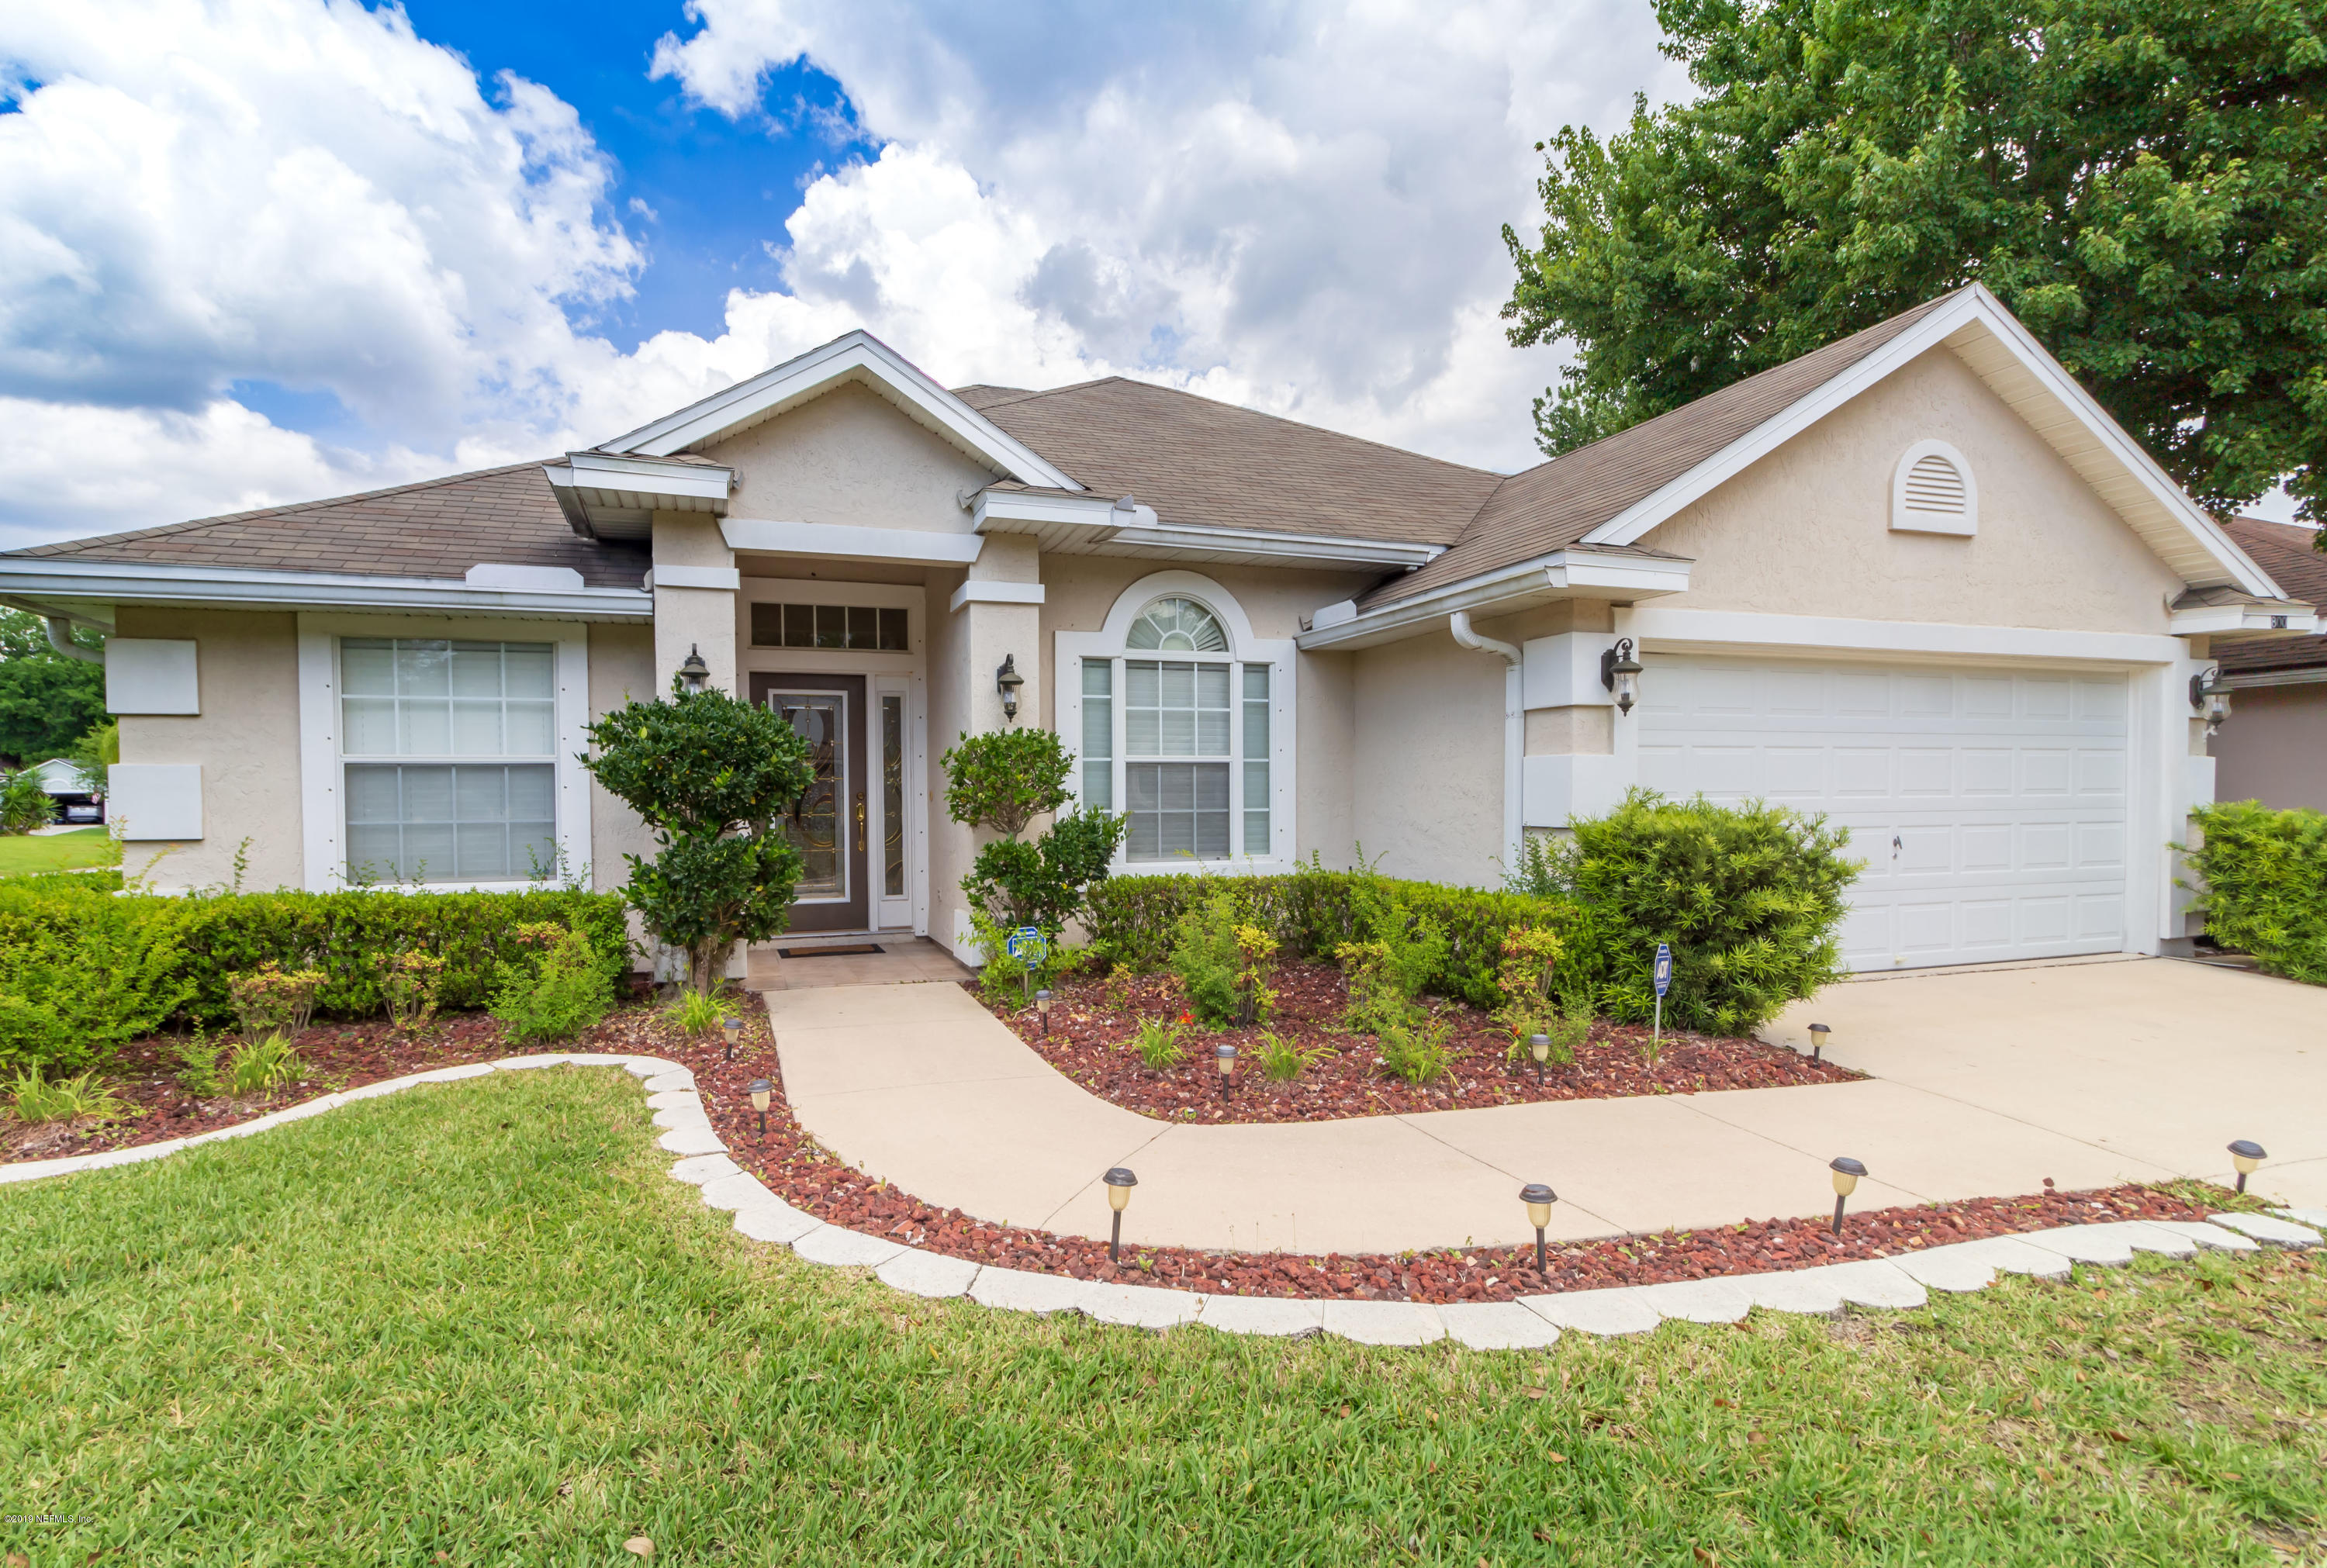 800 E DOTY BRANCH LN, Saint Johns in ST. JOHNS County, FL 32259 Home for Sale